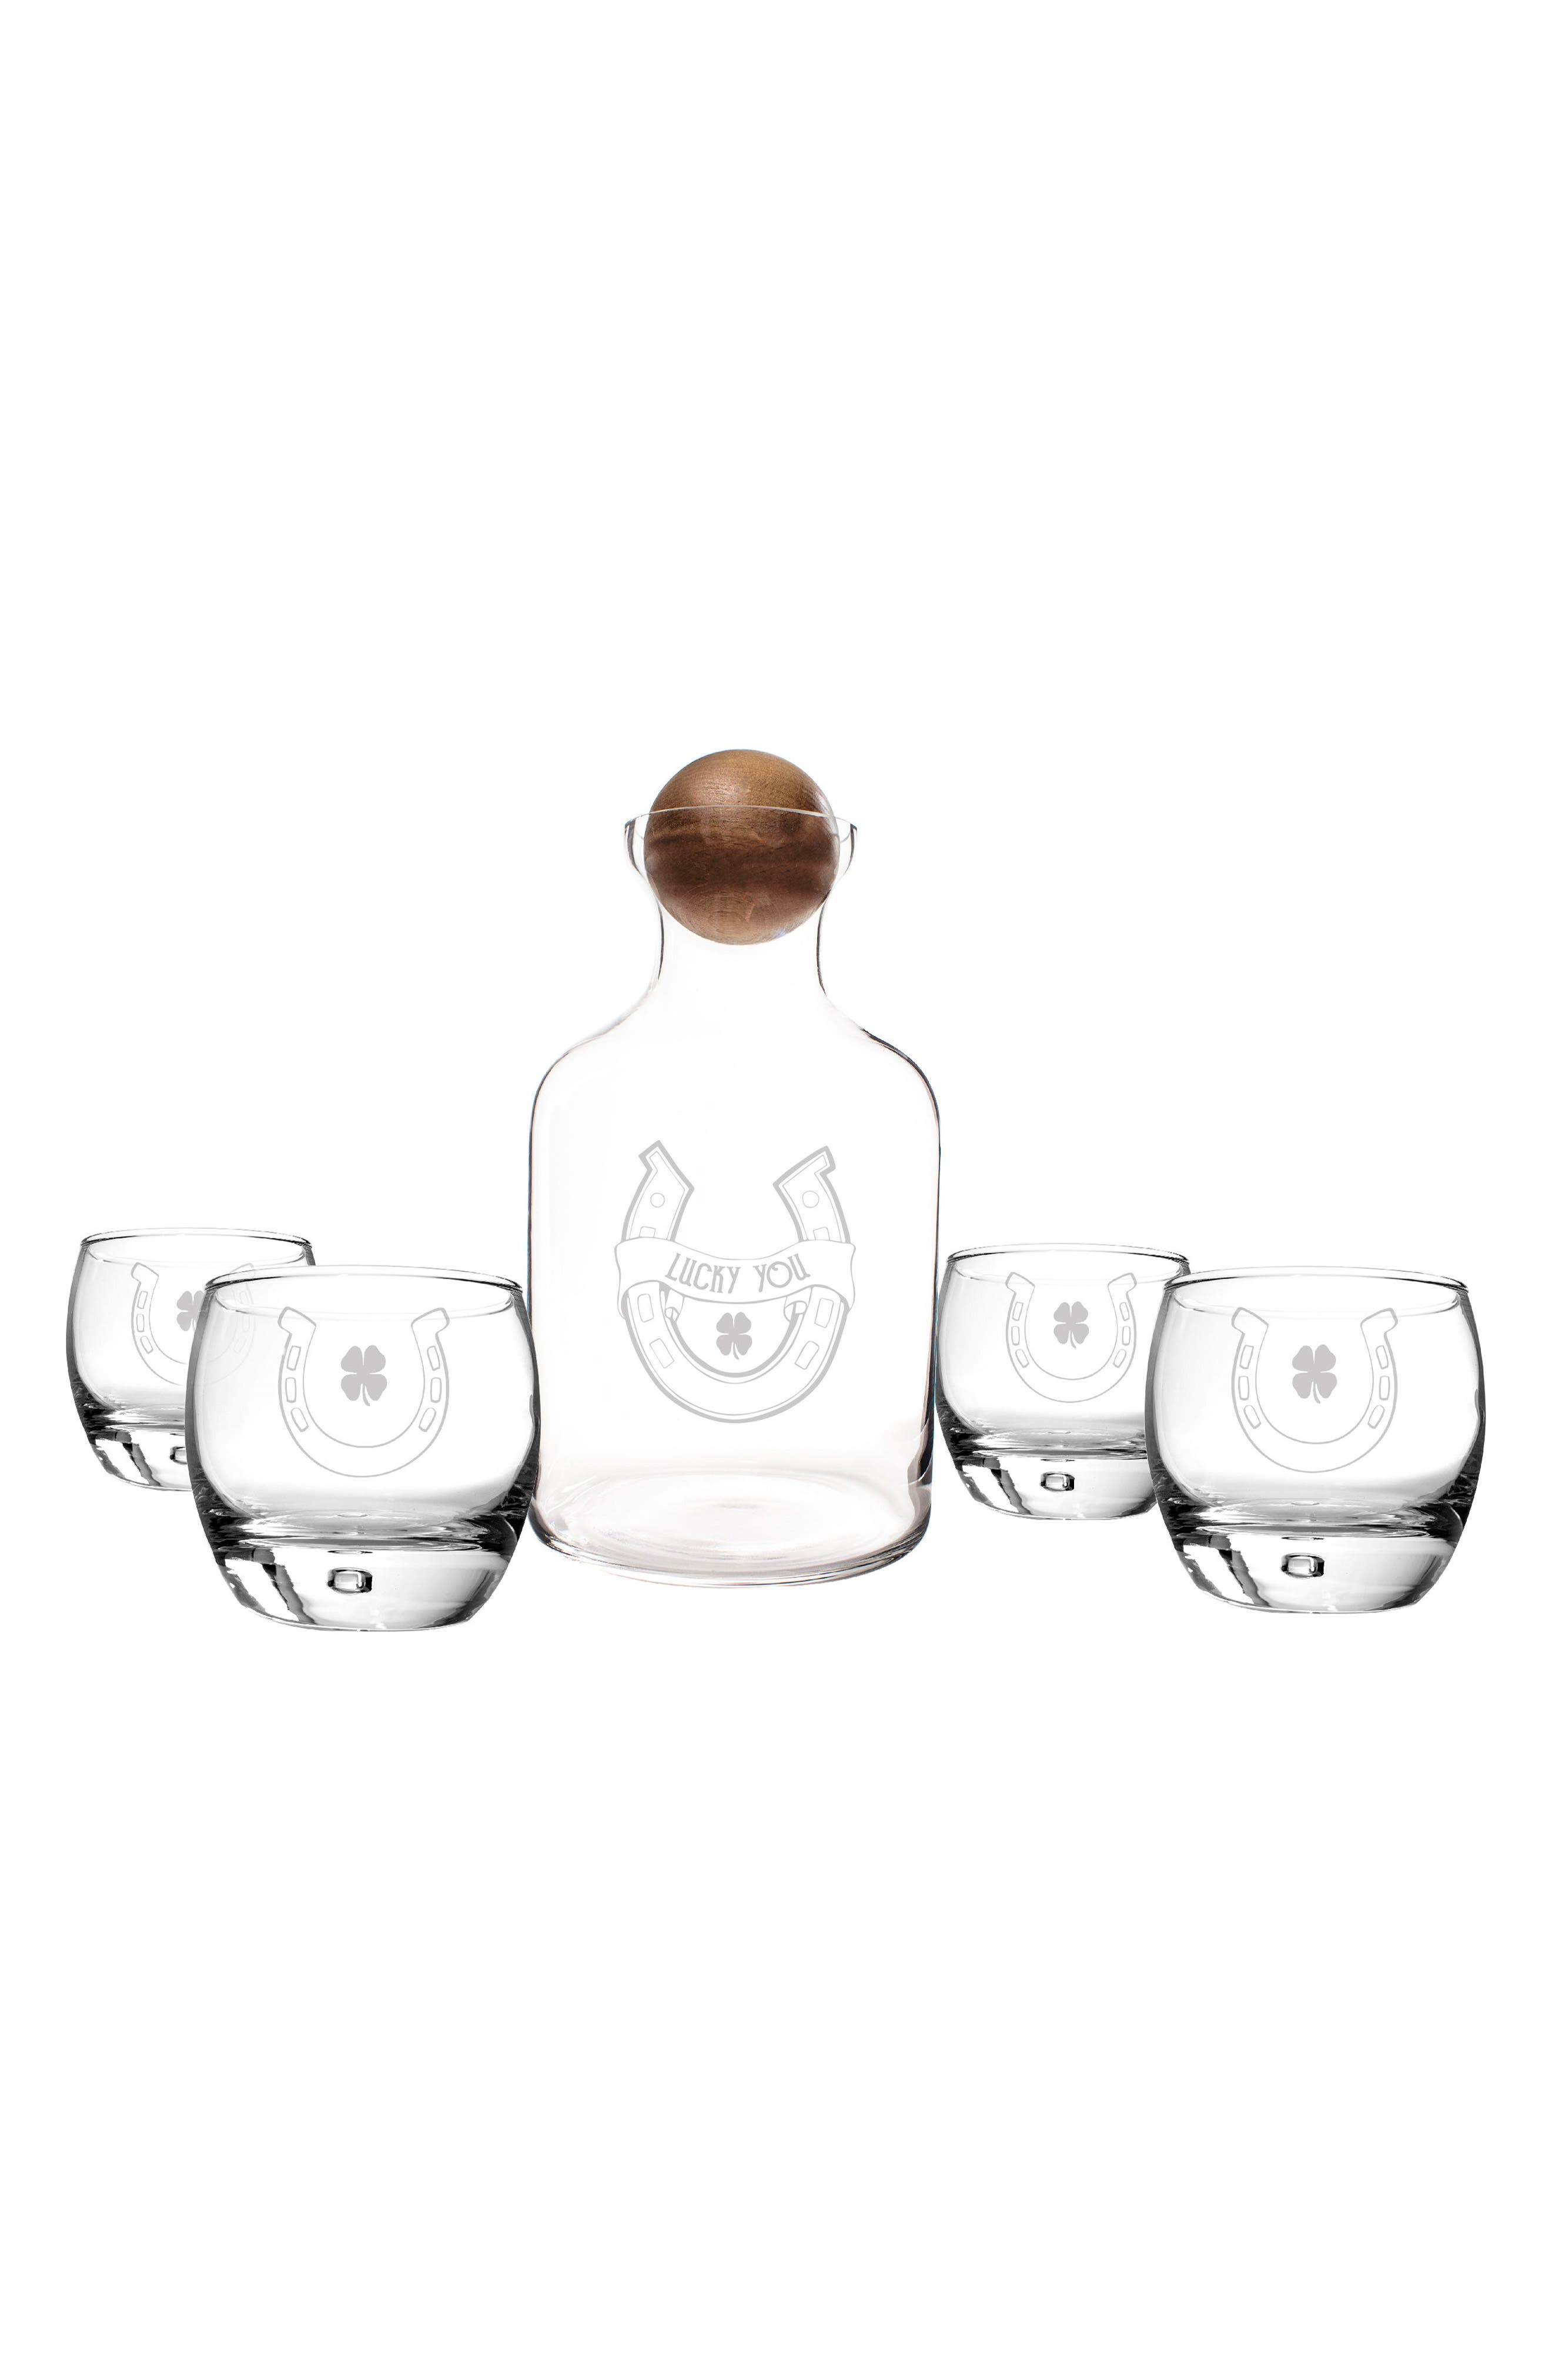 Alternate Image 1 Selected - Cathy's Concepts Lucky You Horseshoe Decanter & Set of Four Glasses